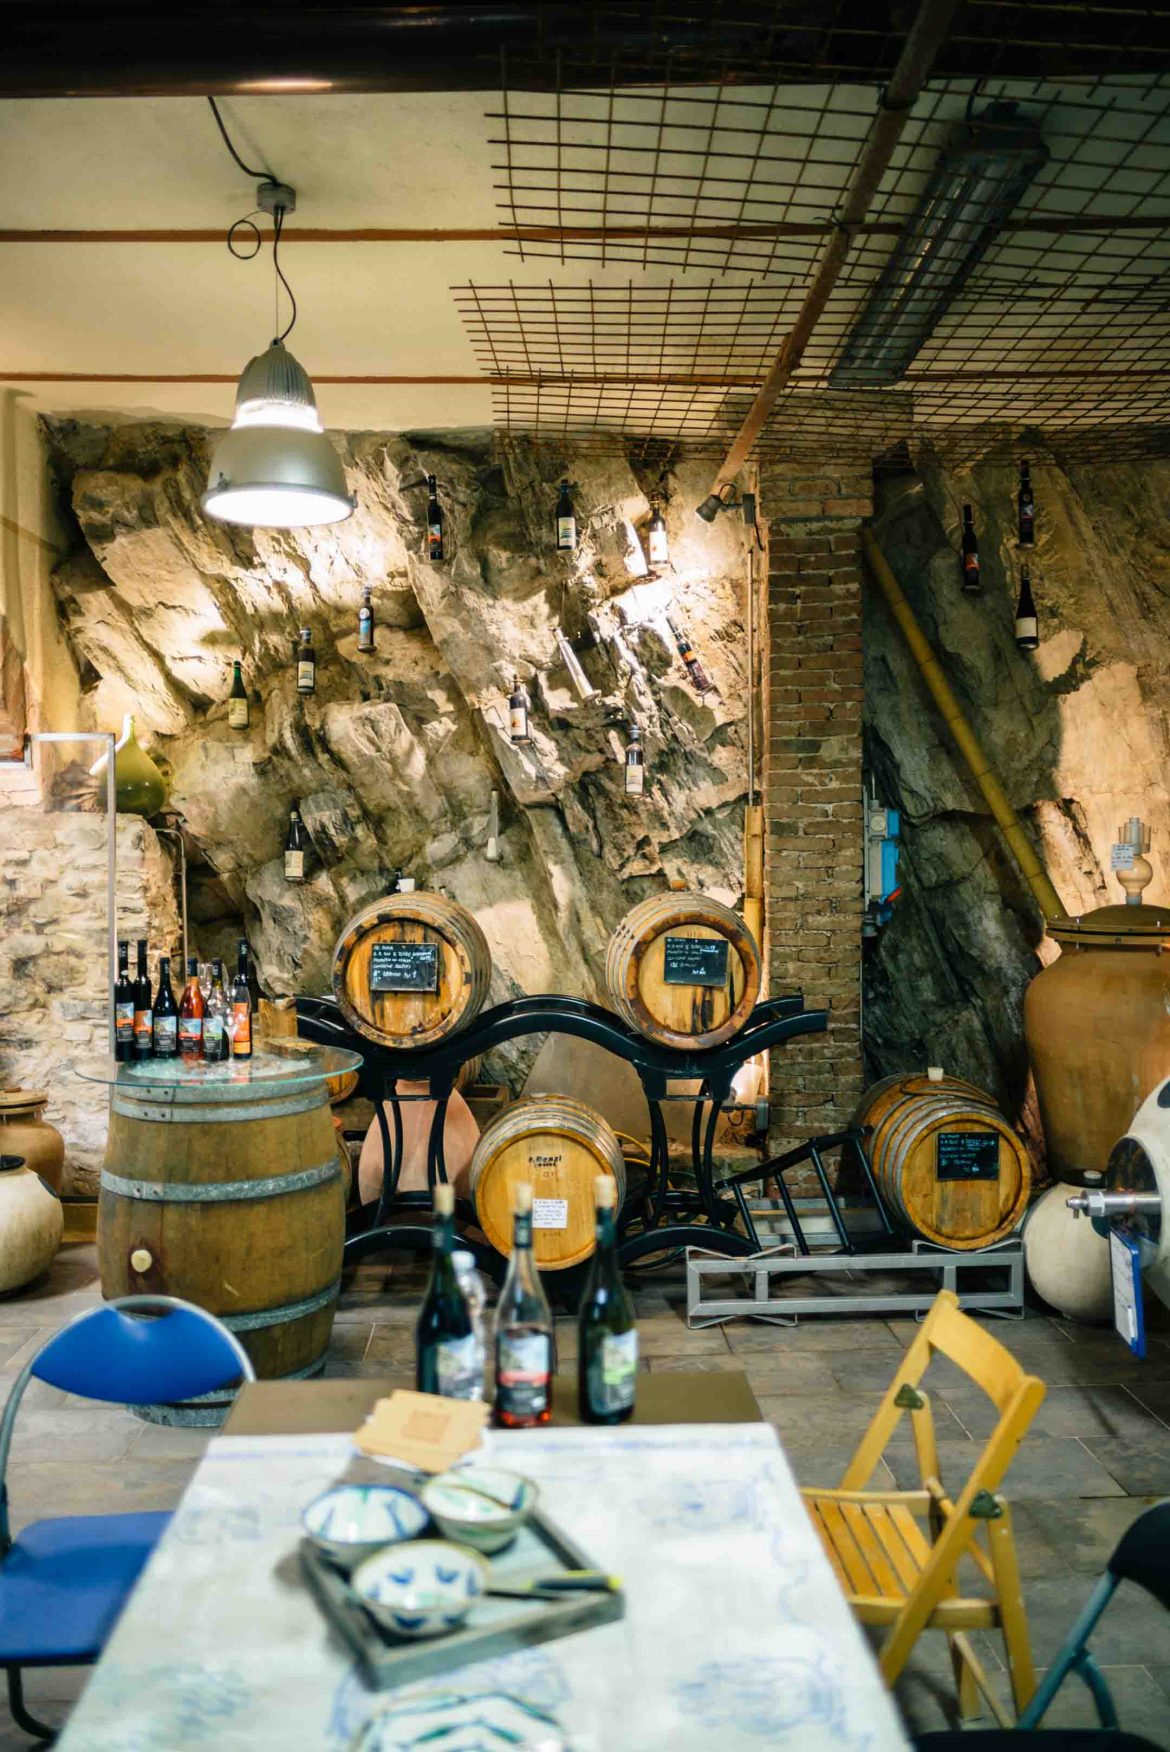 Visit the best winery inCinque Terre, The Taste Edit recommends to book an appointment for a wine tasting withHeydi Bonanini, winemaker at Azienda Agricola Possa winery. He ages his wine in chestnut and acacia barrels.